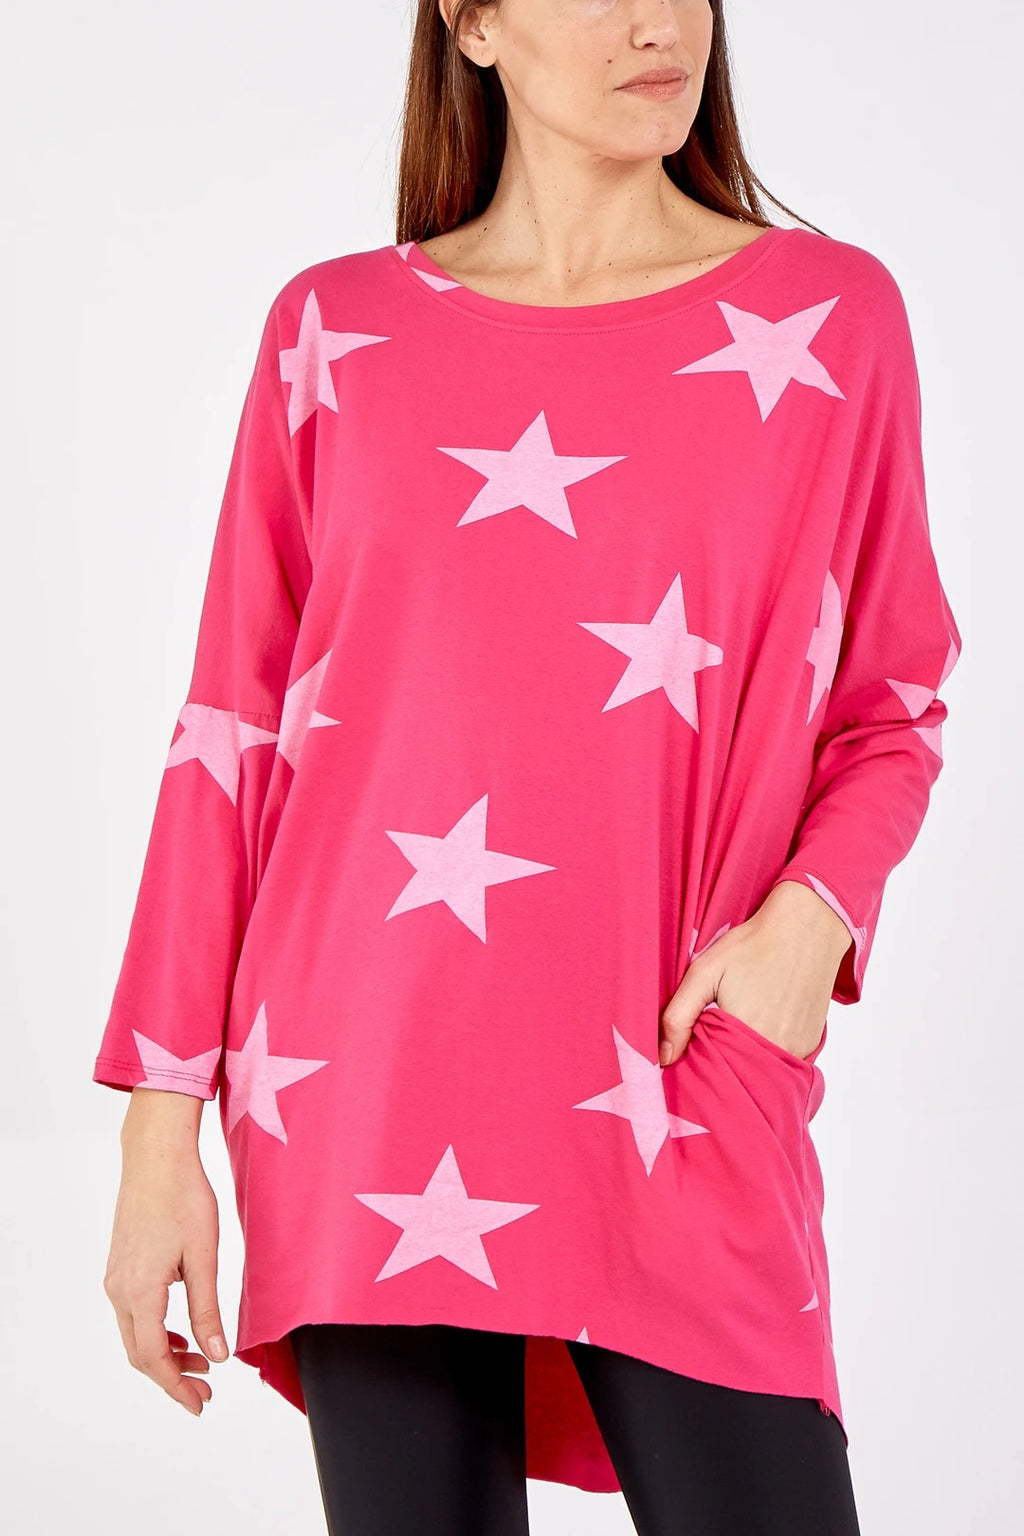 Star Jersey Tunic Top - 6 NEW Colours